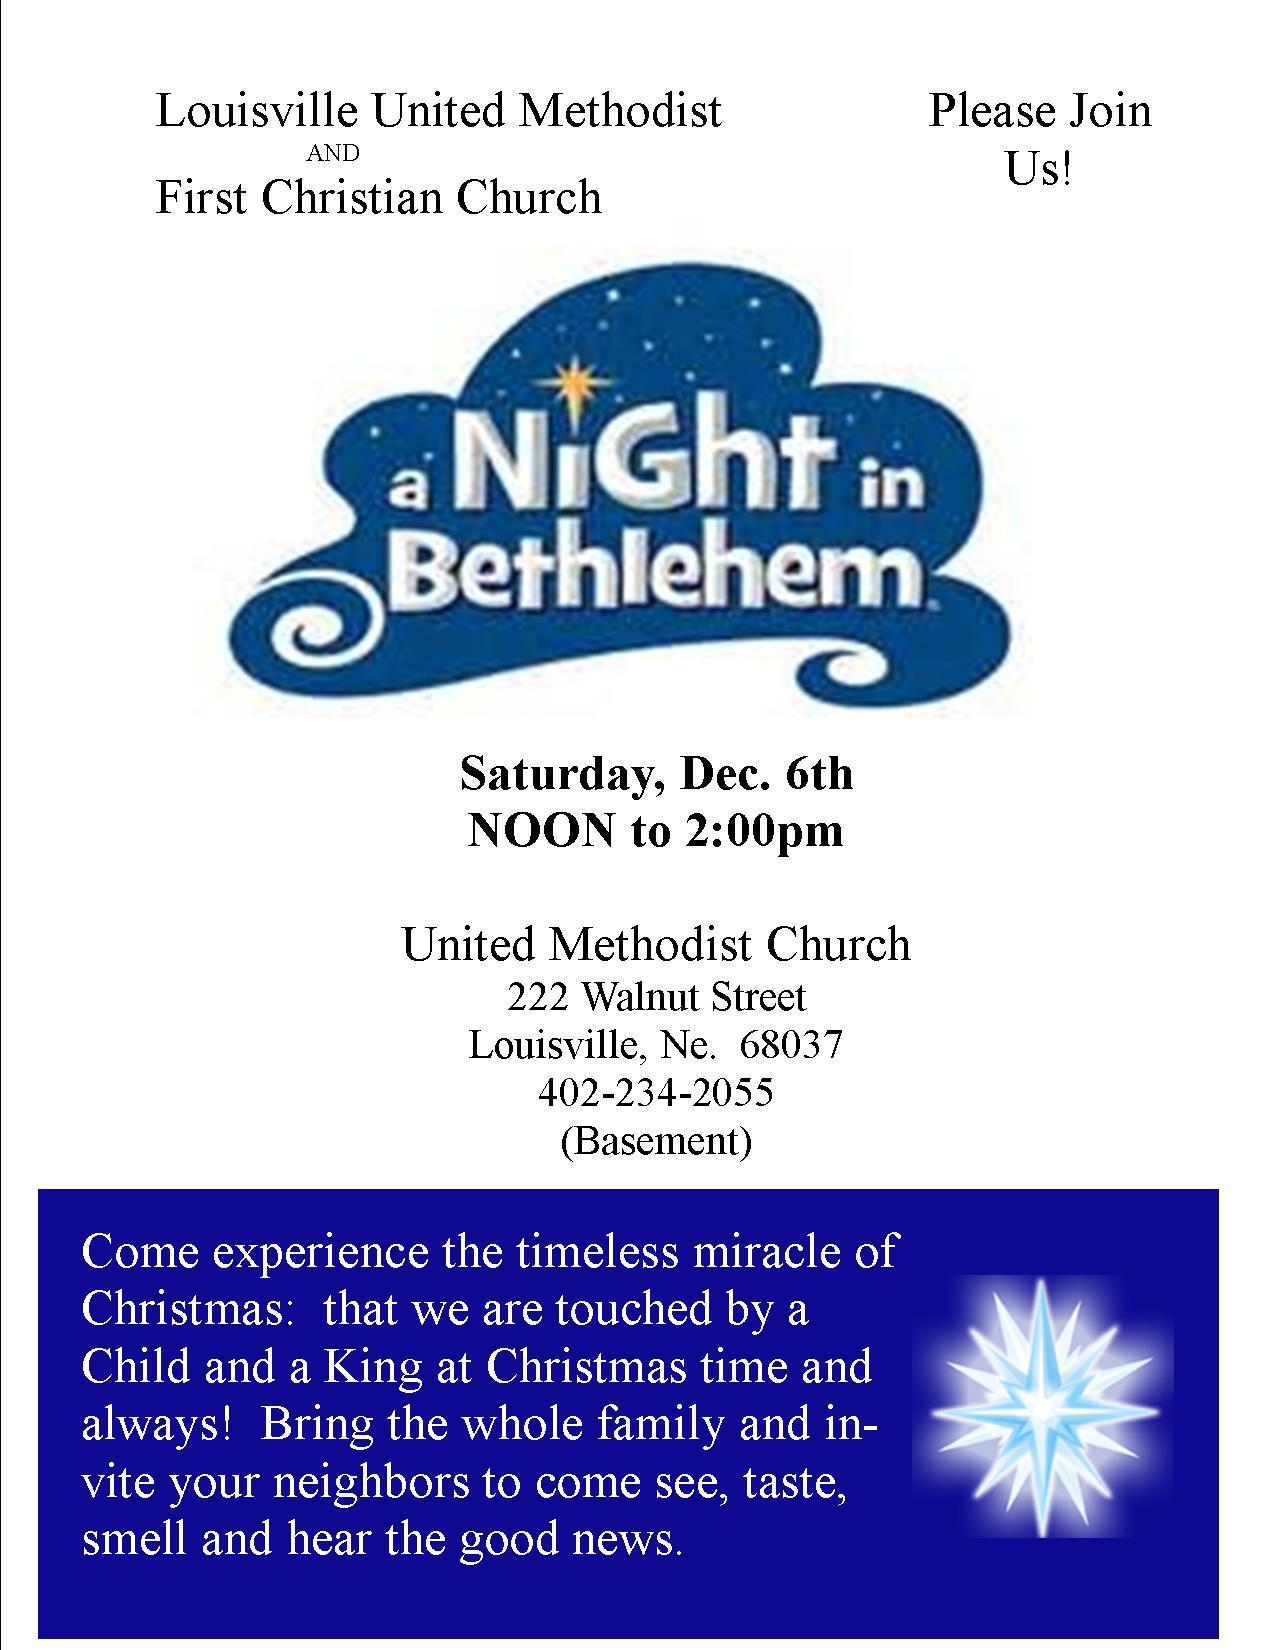 11-5Night in Bethlehem Flyer 2014-2